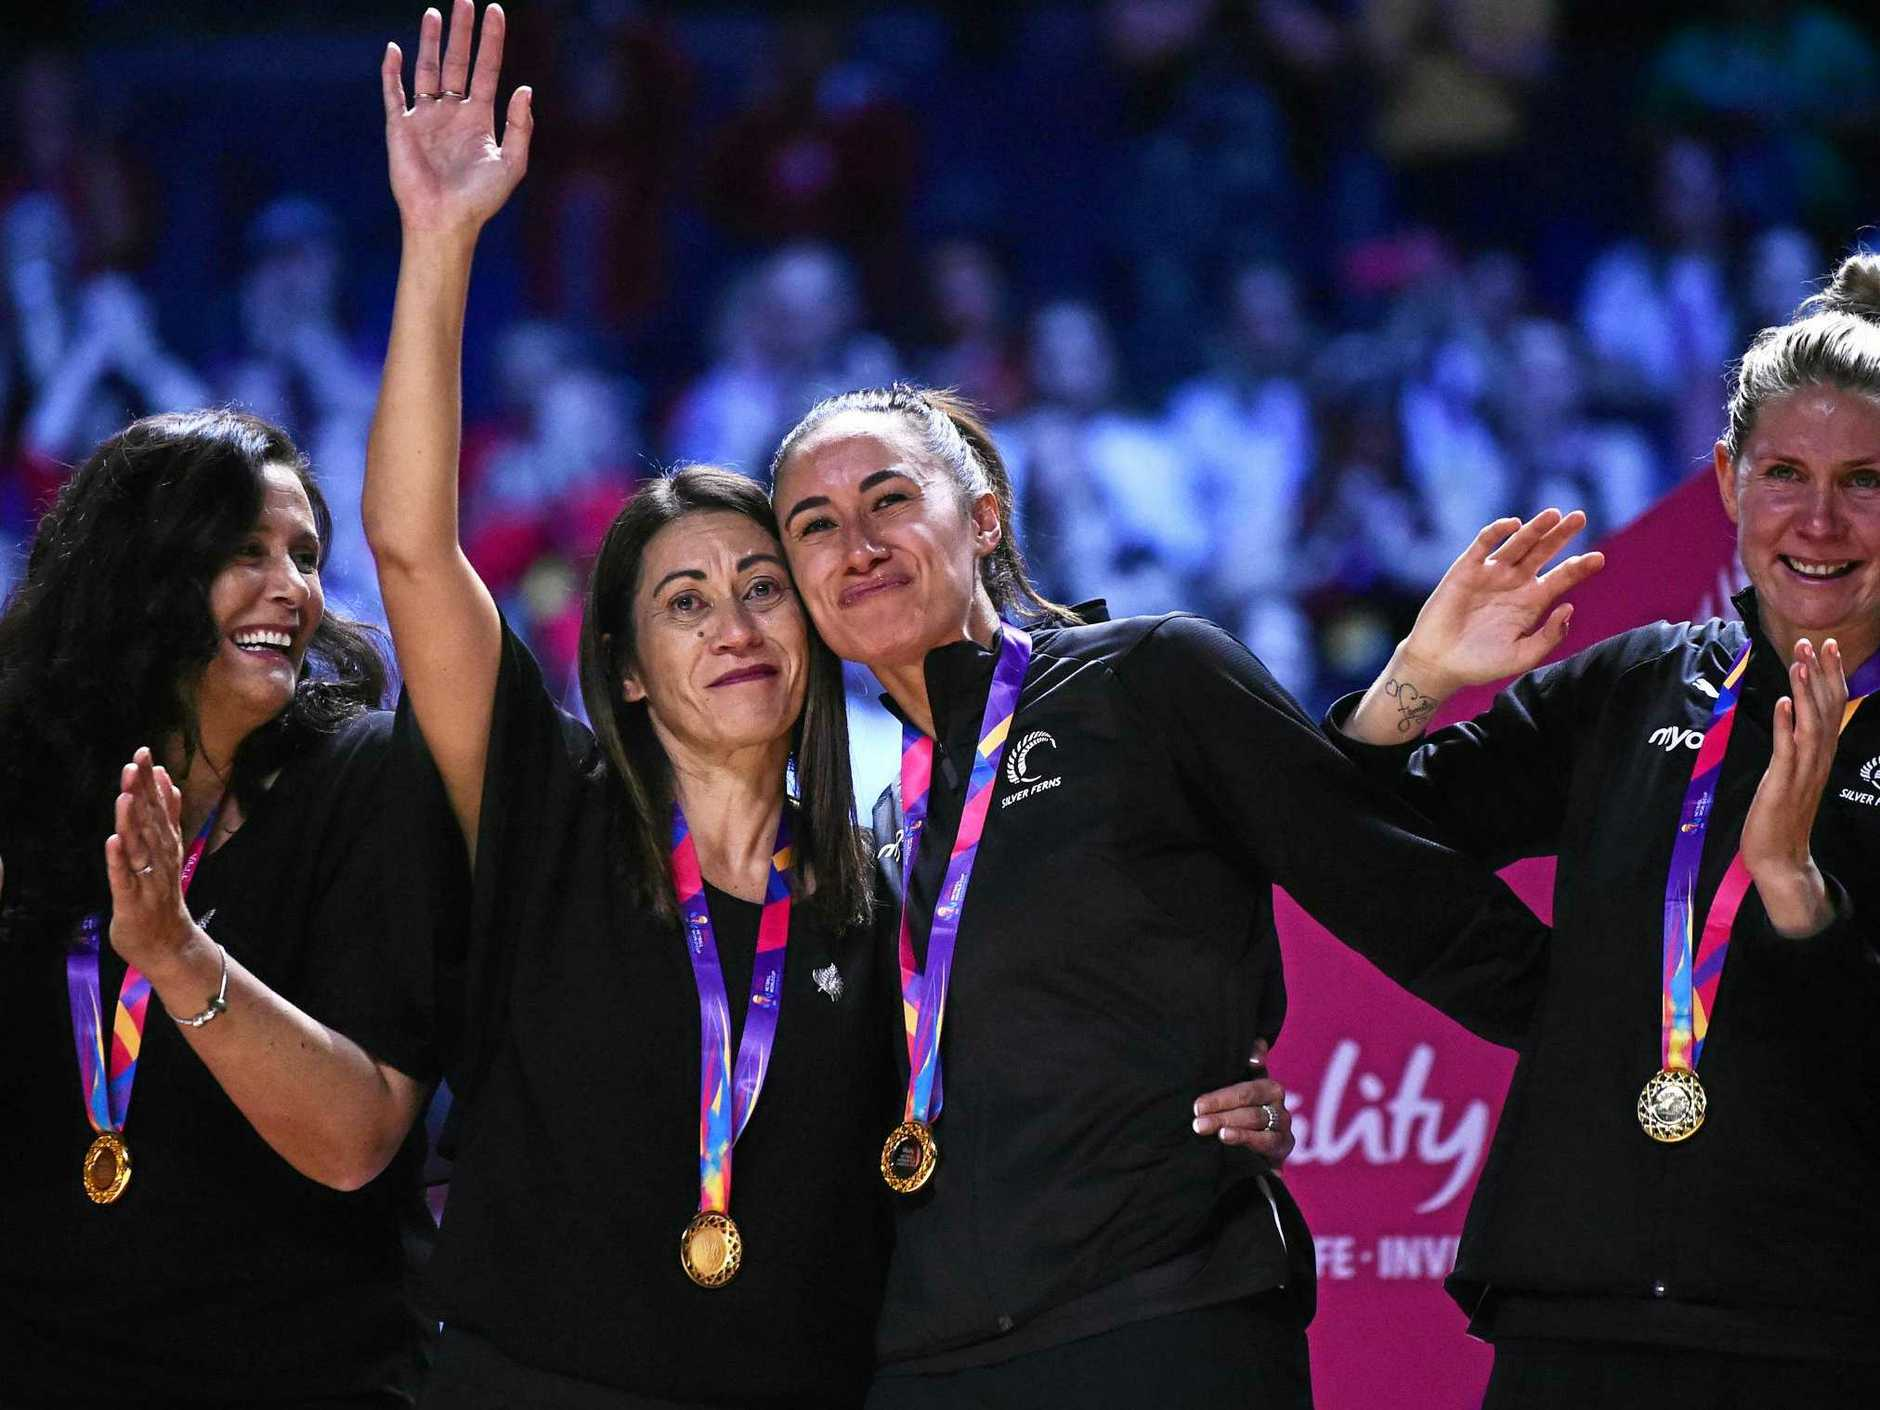 LIVERPOOL, ENGLAND - JULY 21:  Maria Foulau celebrates with Noeline Taurua coach of New Zealand after winning the World Cup during the Vitality Netball World Cup Final match between Australia and New Zealand at M&S Bank Arena on July 21, 2019 in Liverpool, England. (Photo by Nathan Stirk/Getty Images)